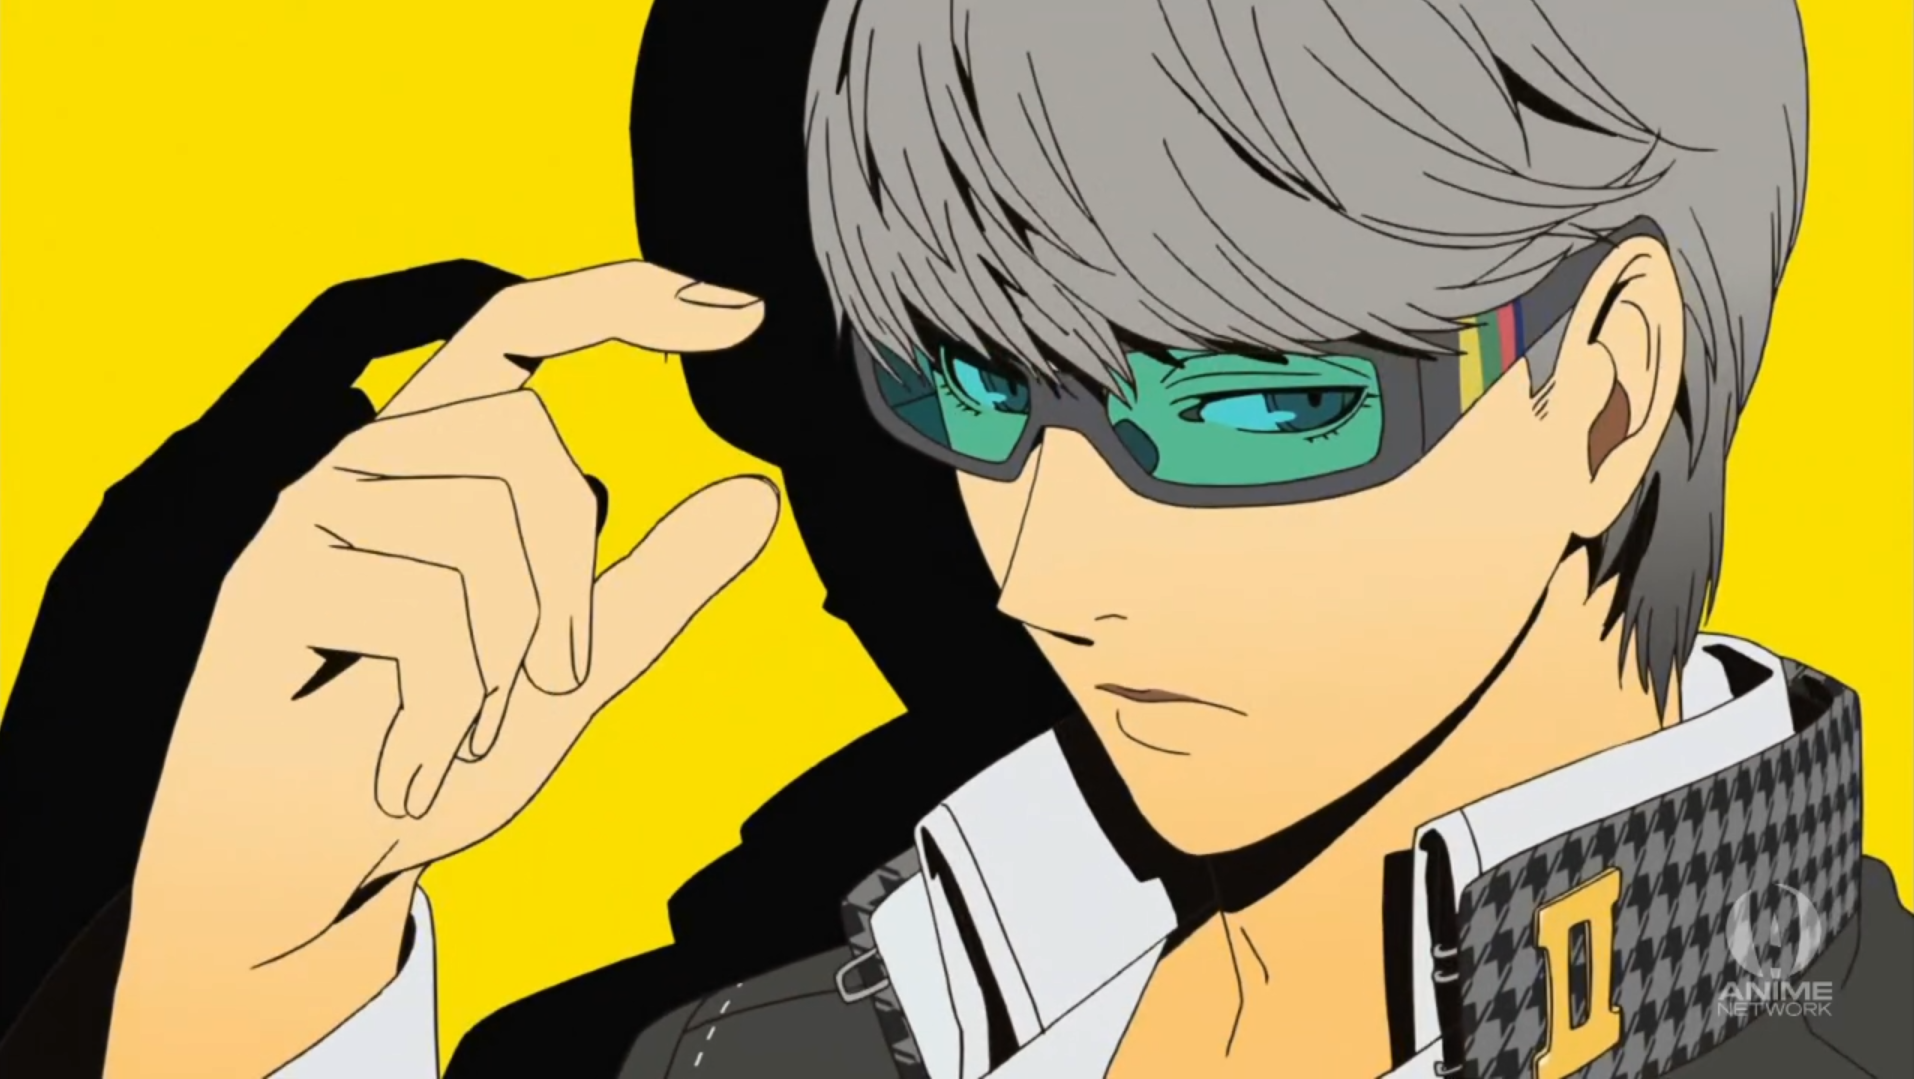 Persona Protagonist Protagonist of Persona 4